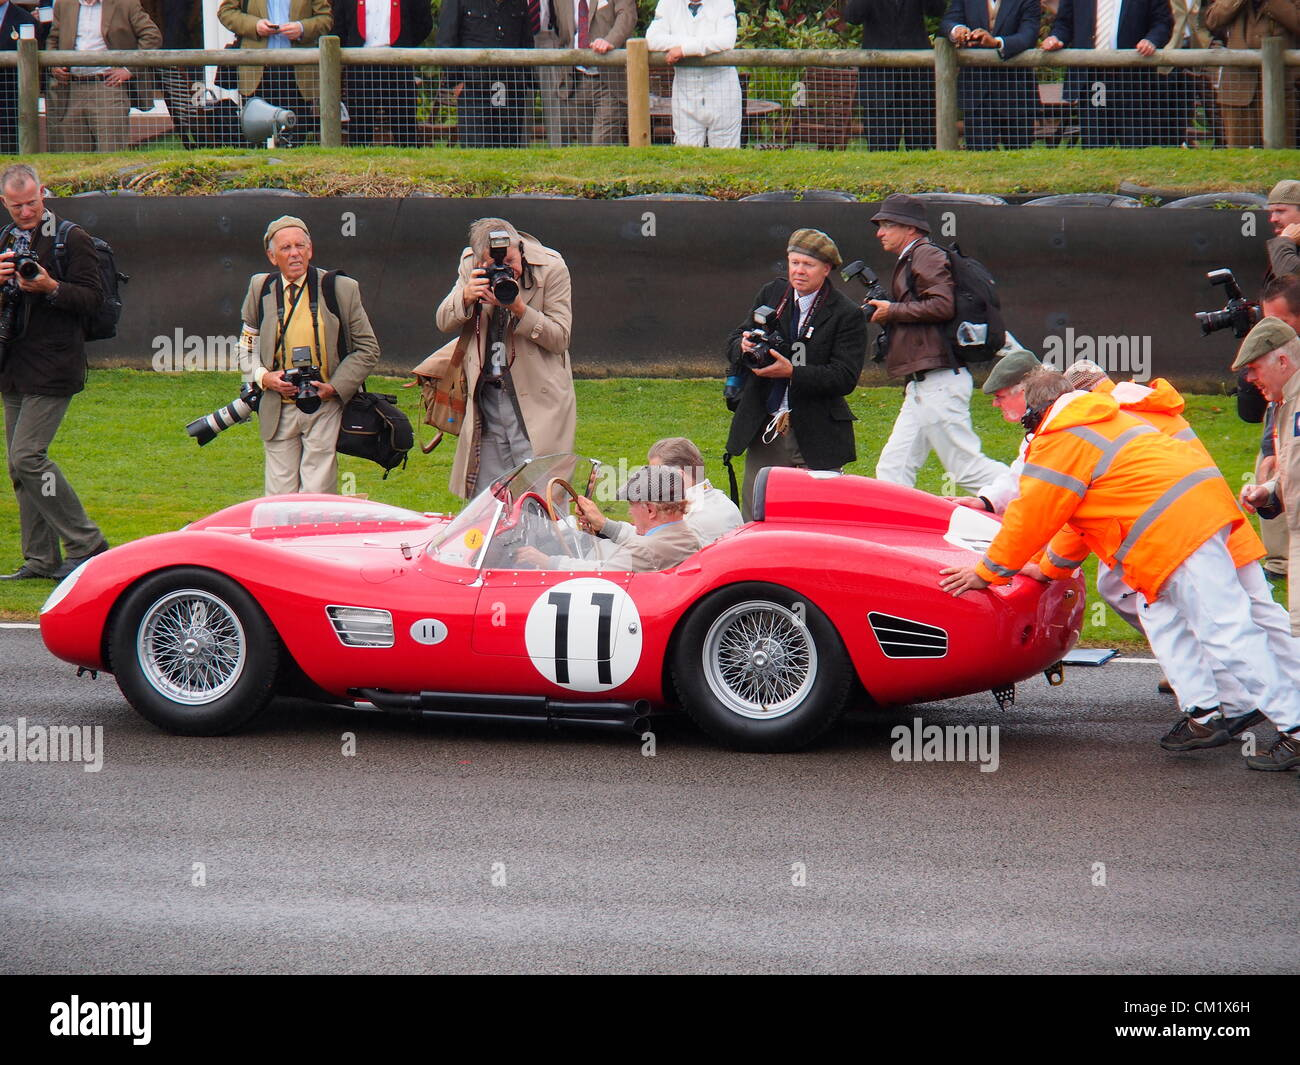 Goodwood Revival Practice Day Friday September 14th.2012. Historic racing car number 11 with driver and passenger - Stock Image